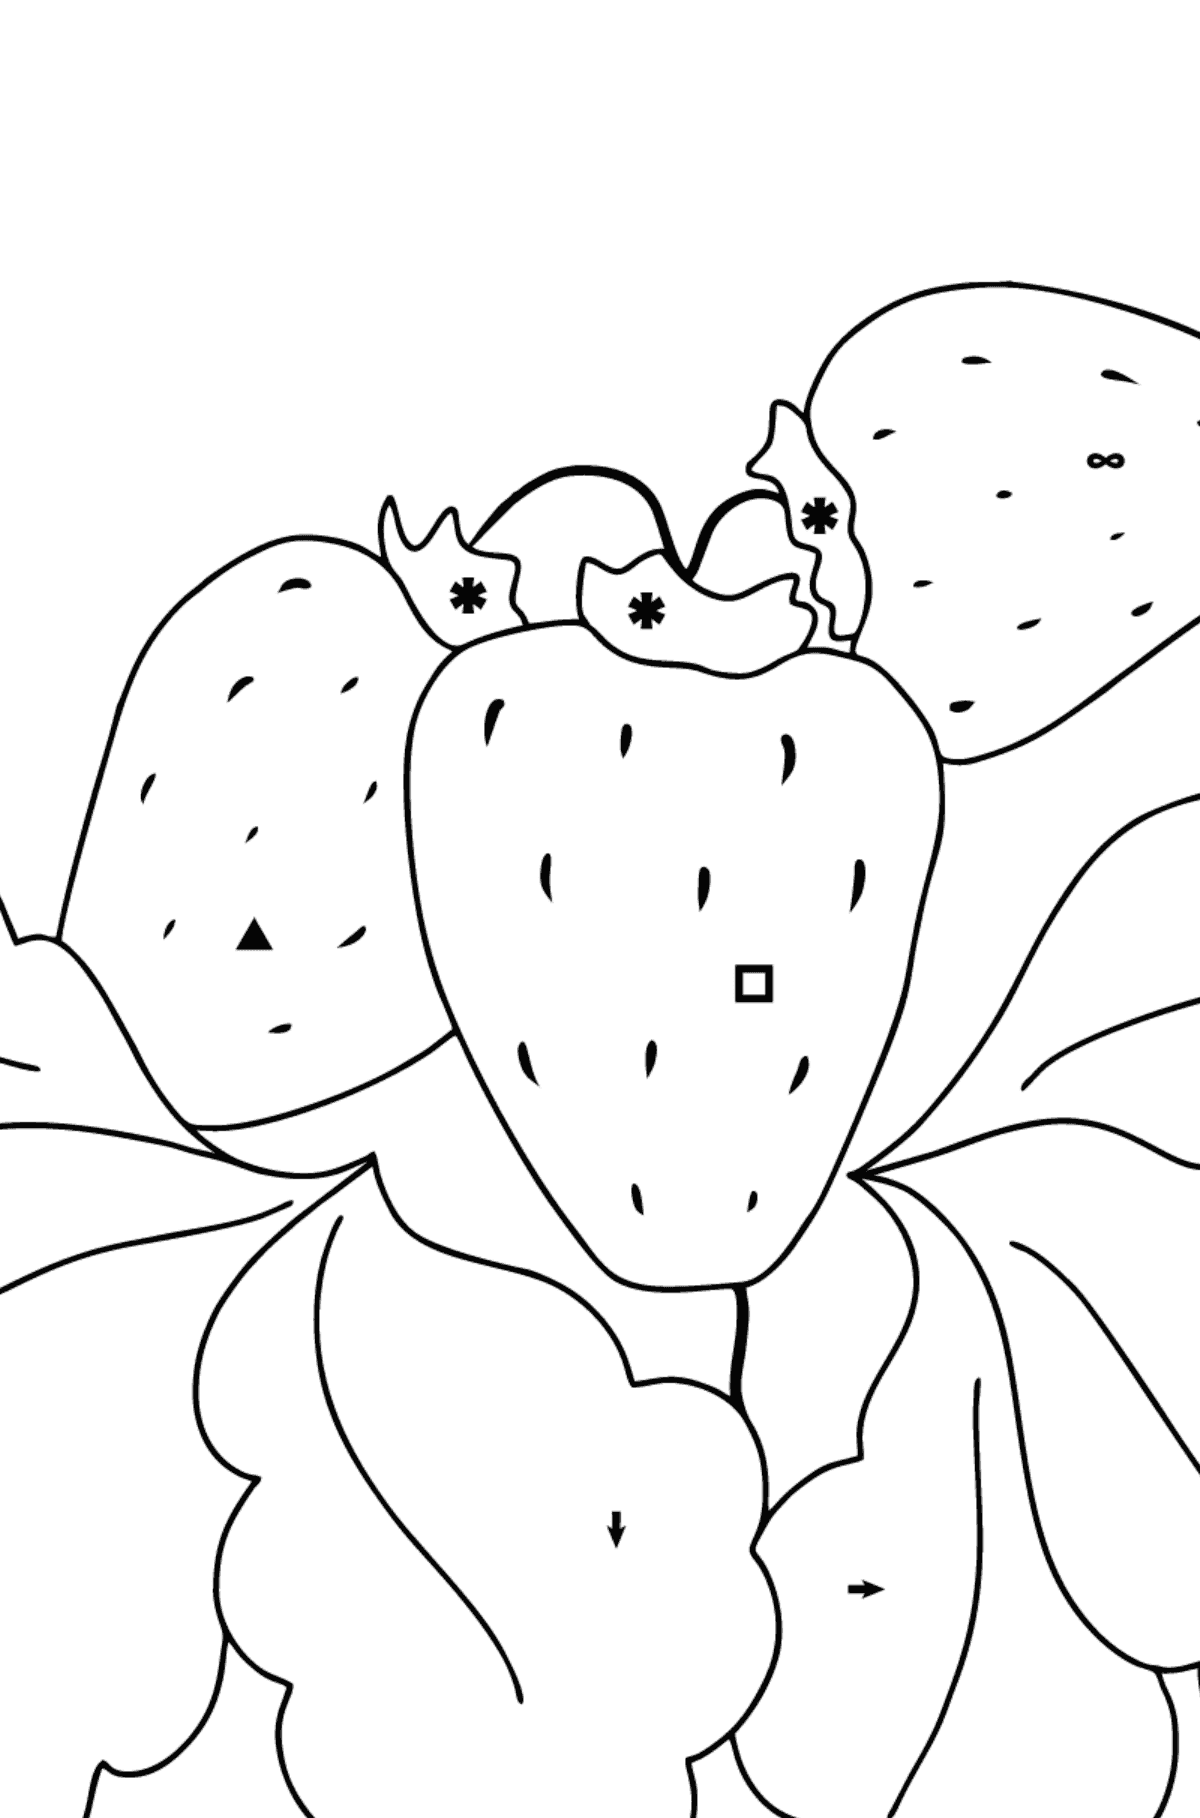 Coloring Page - Summer and Strawberries - Coloring by Symbols for Kids